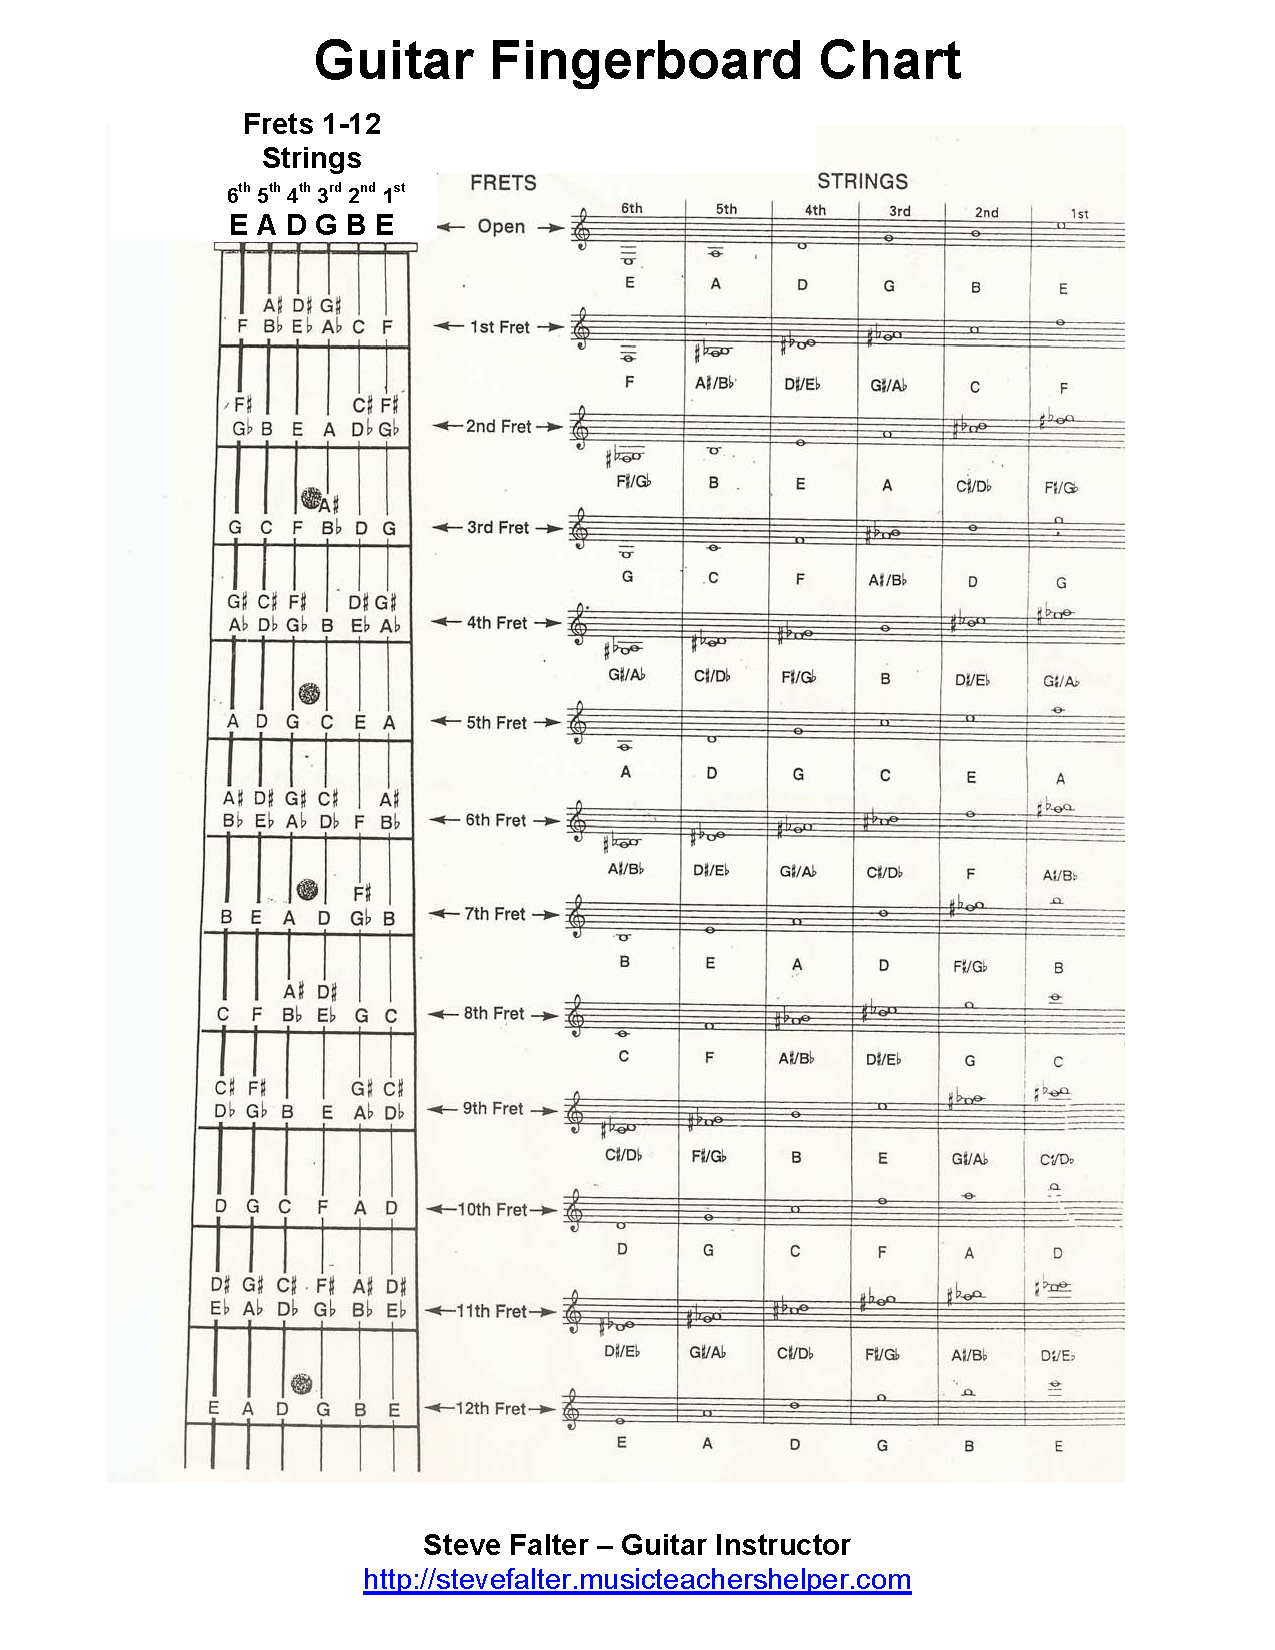 Free guitar worksheet the most complete fingerboard chart ever